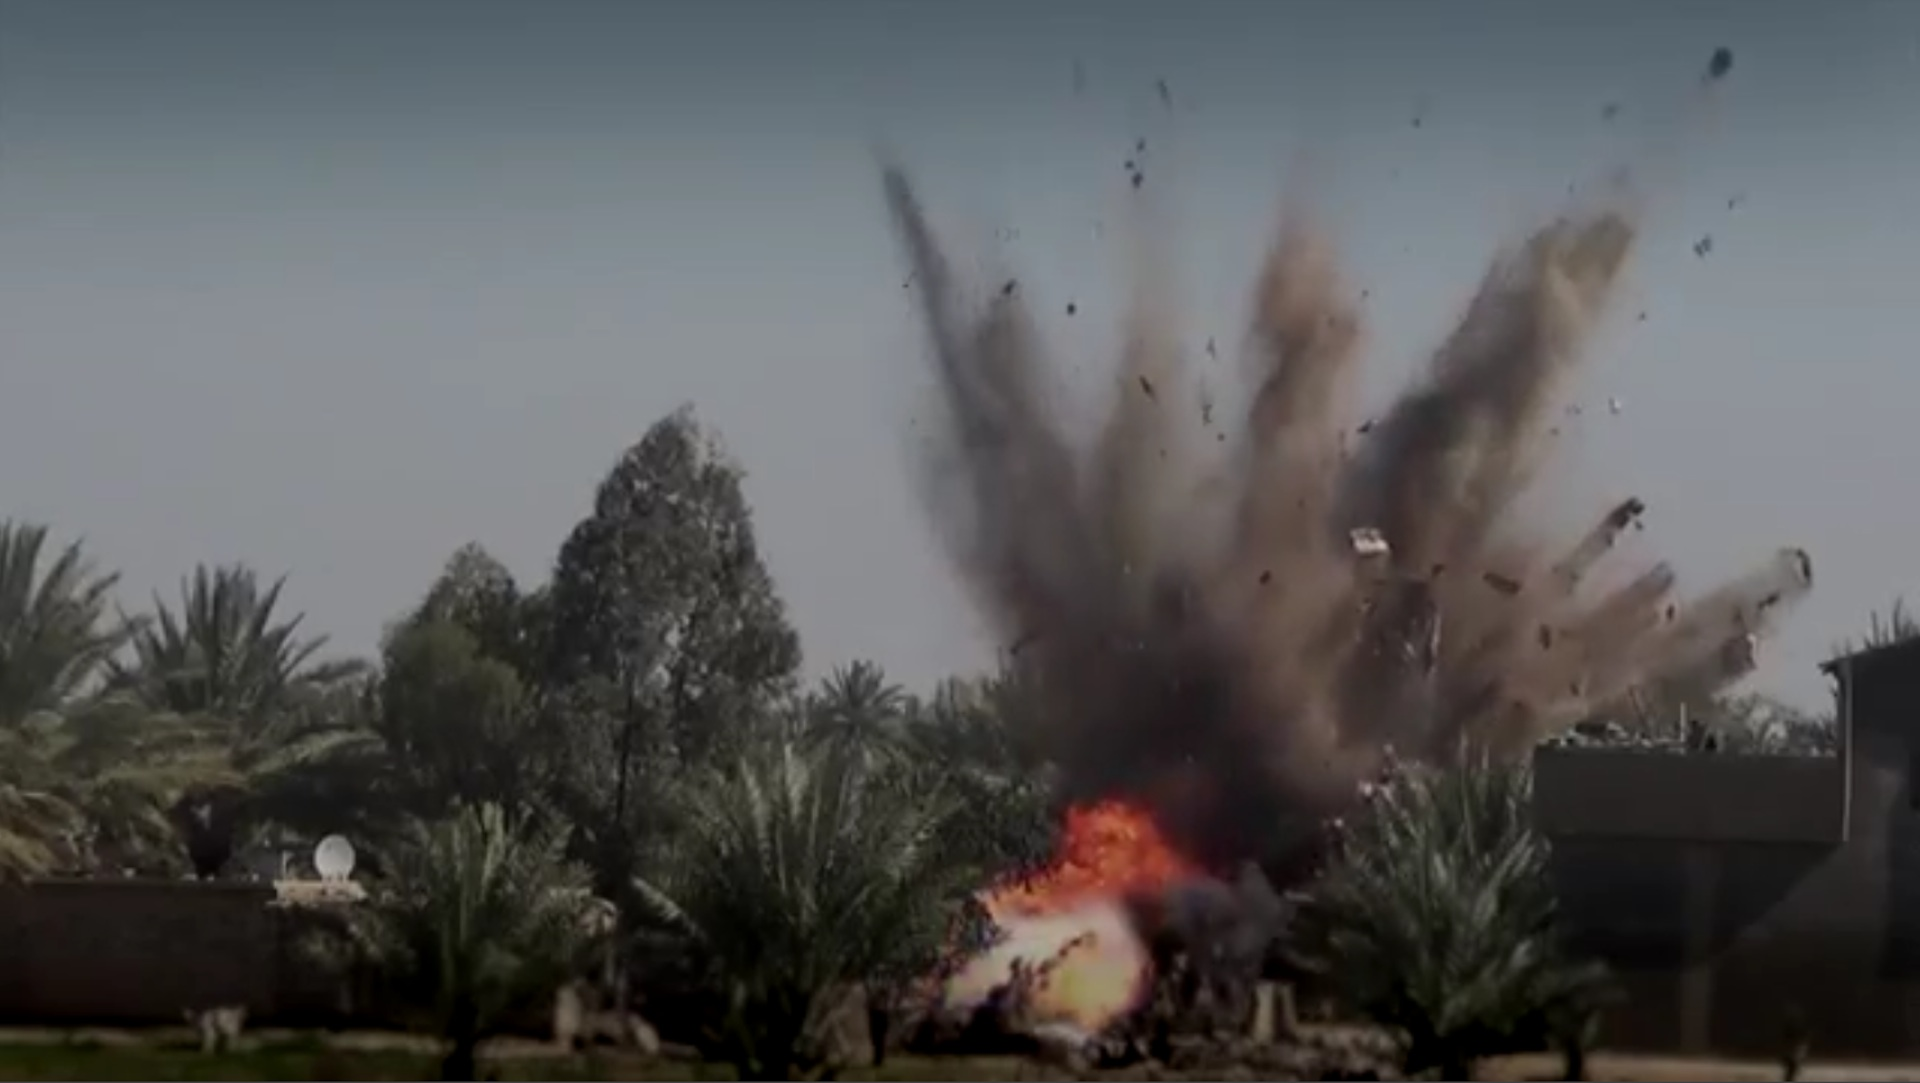 Islamic State releases trailer for 'Flames of War' - The